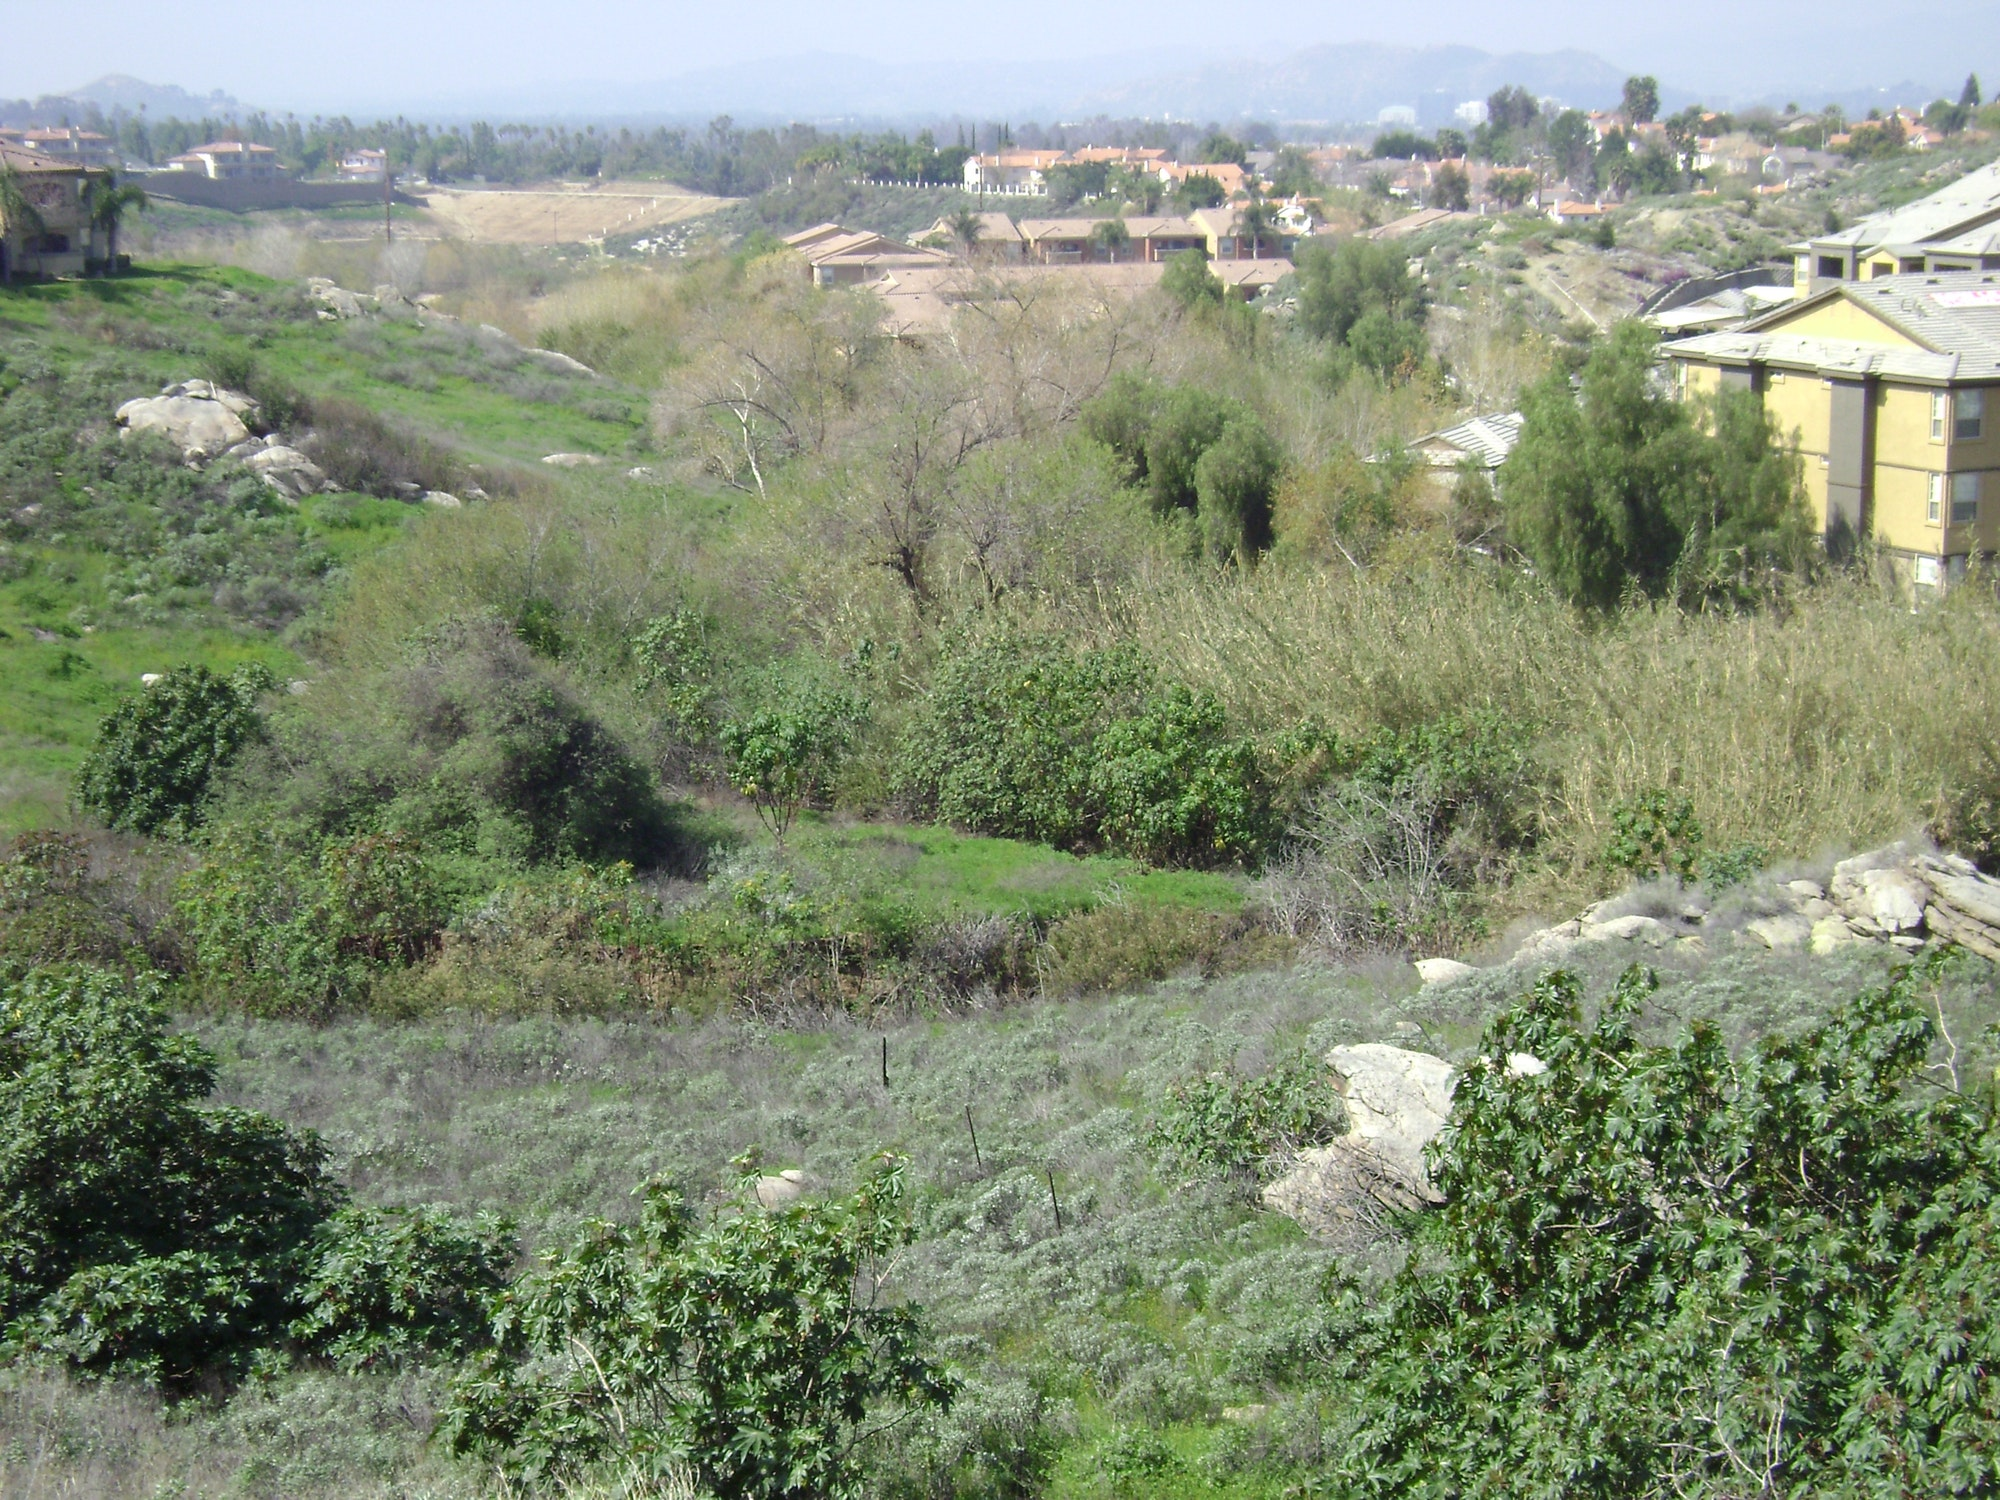 Image of a natural habitat corridor with native landscape in the forefront and homes in the background.